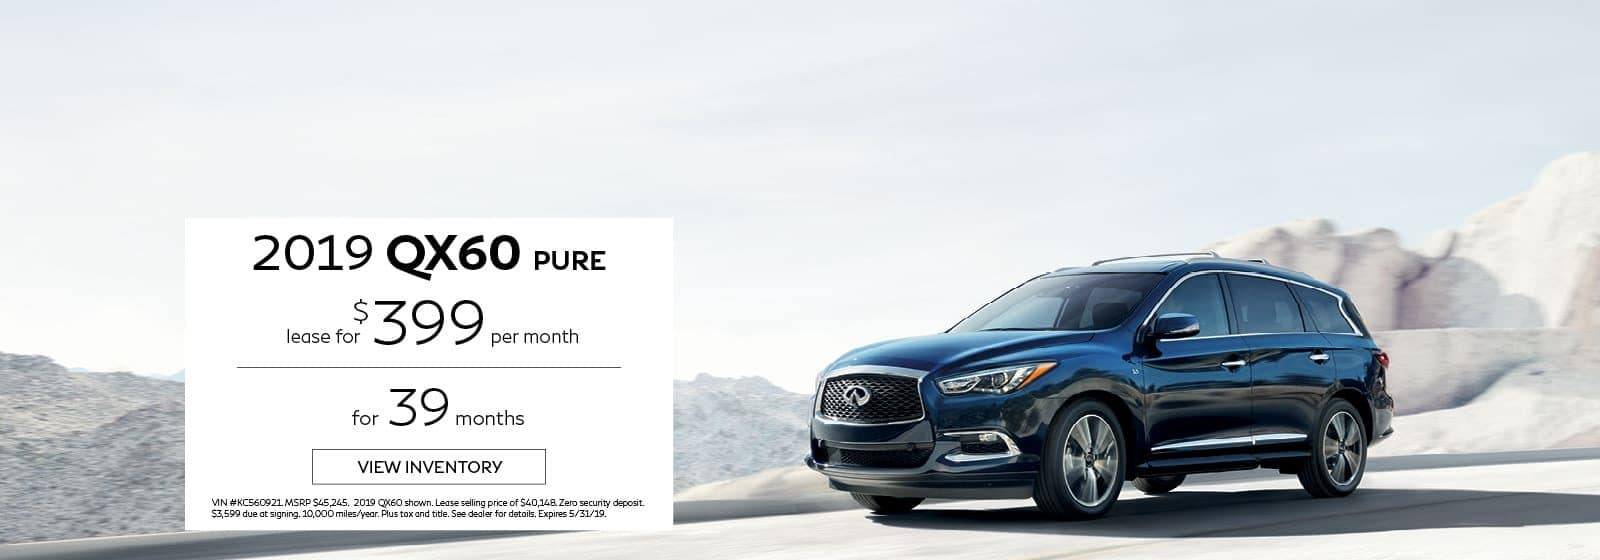 2019 QX60_399_lease_May